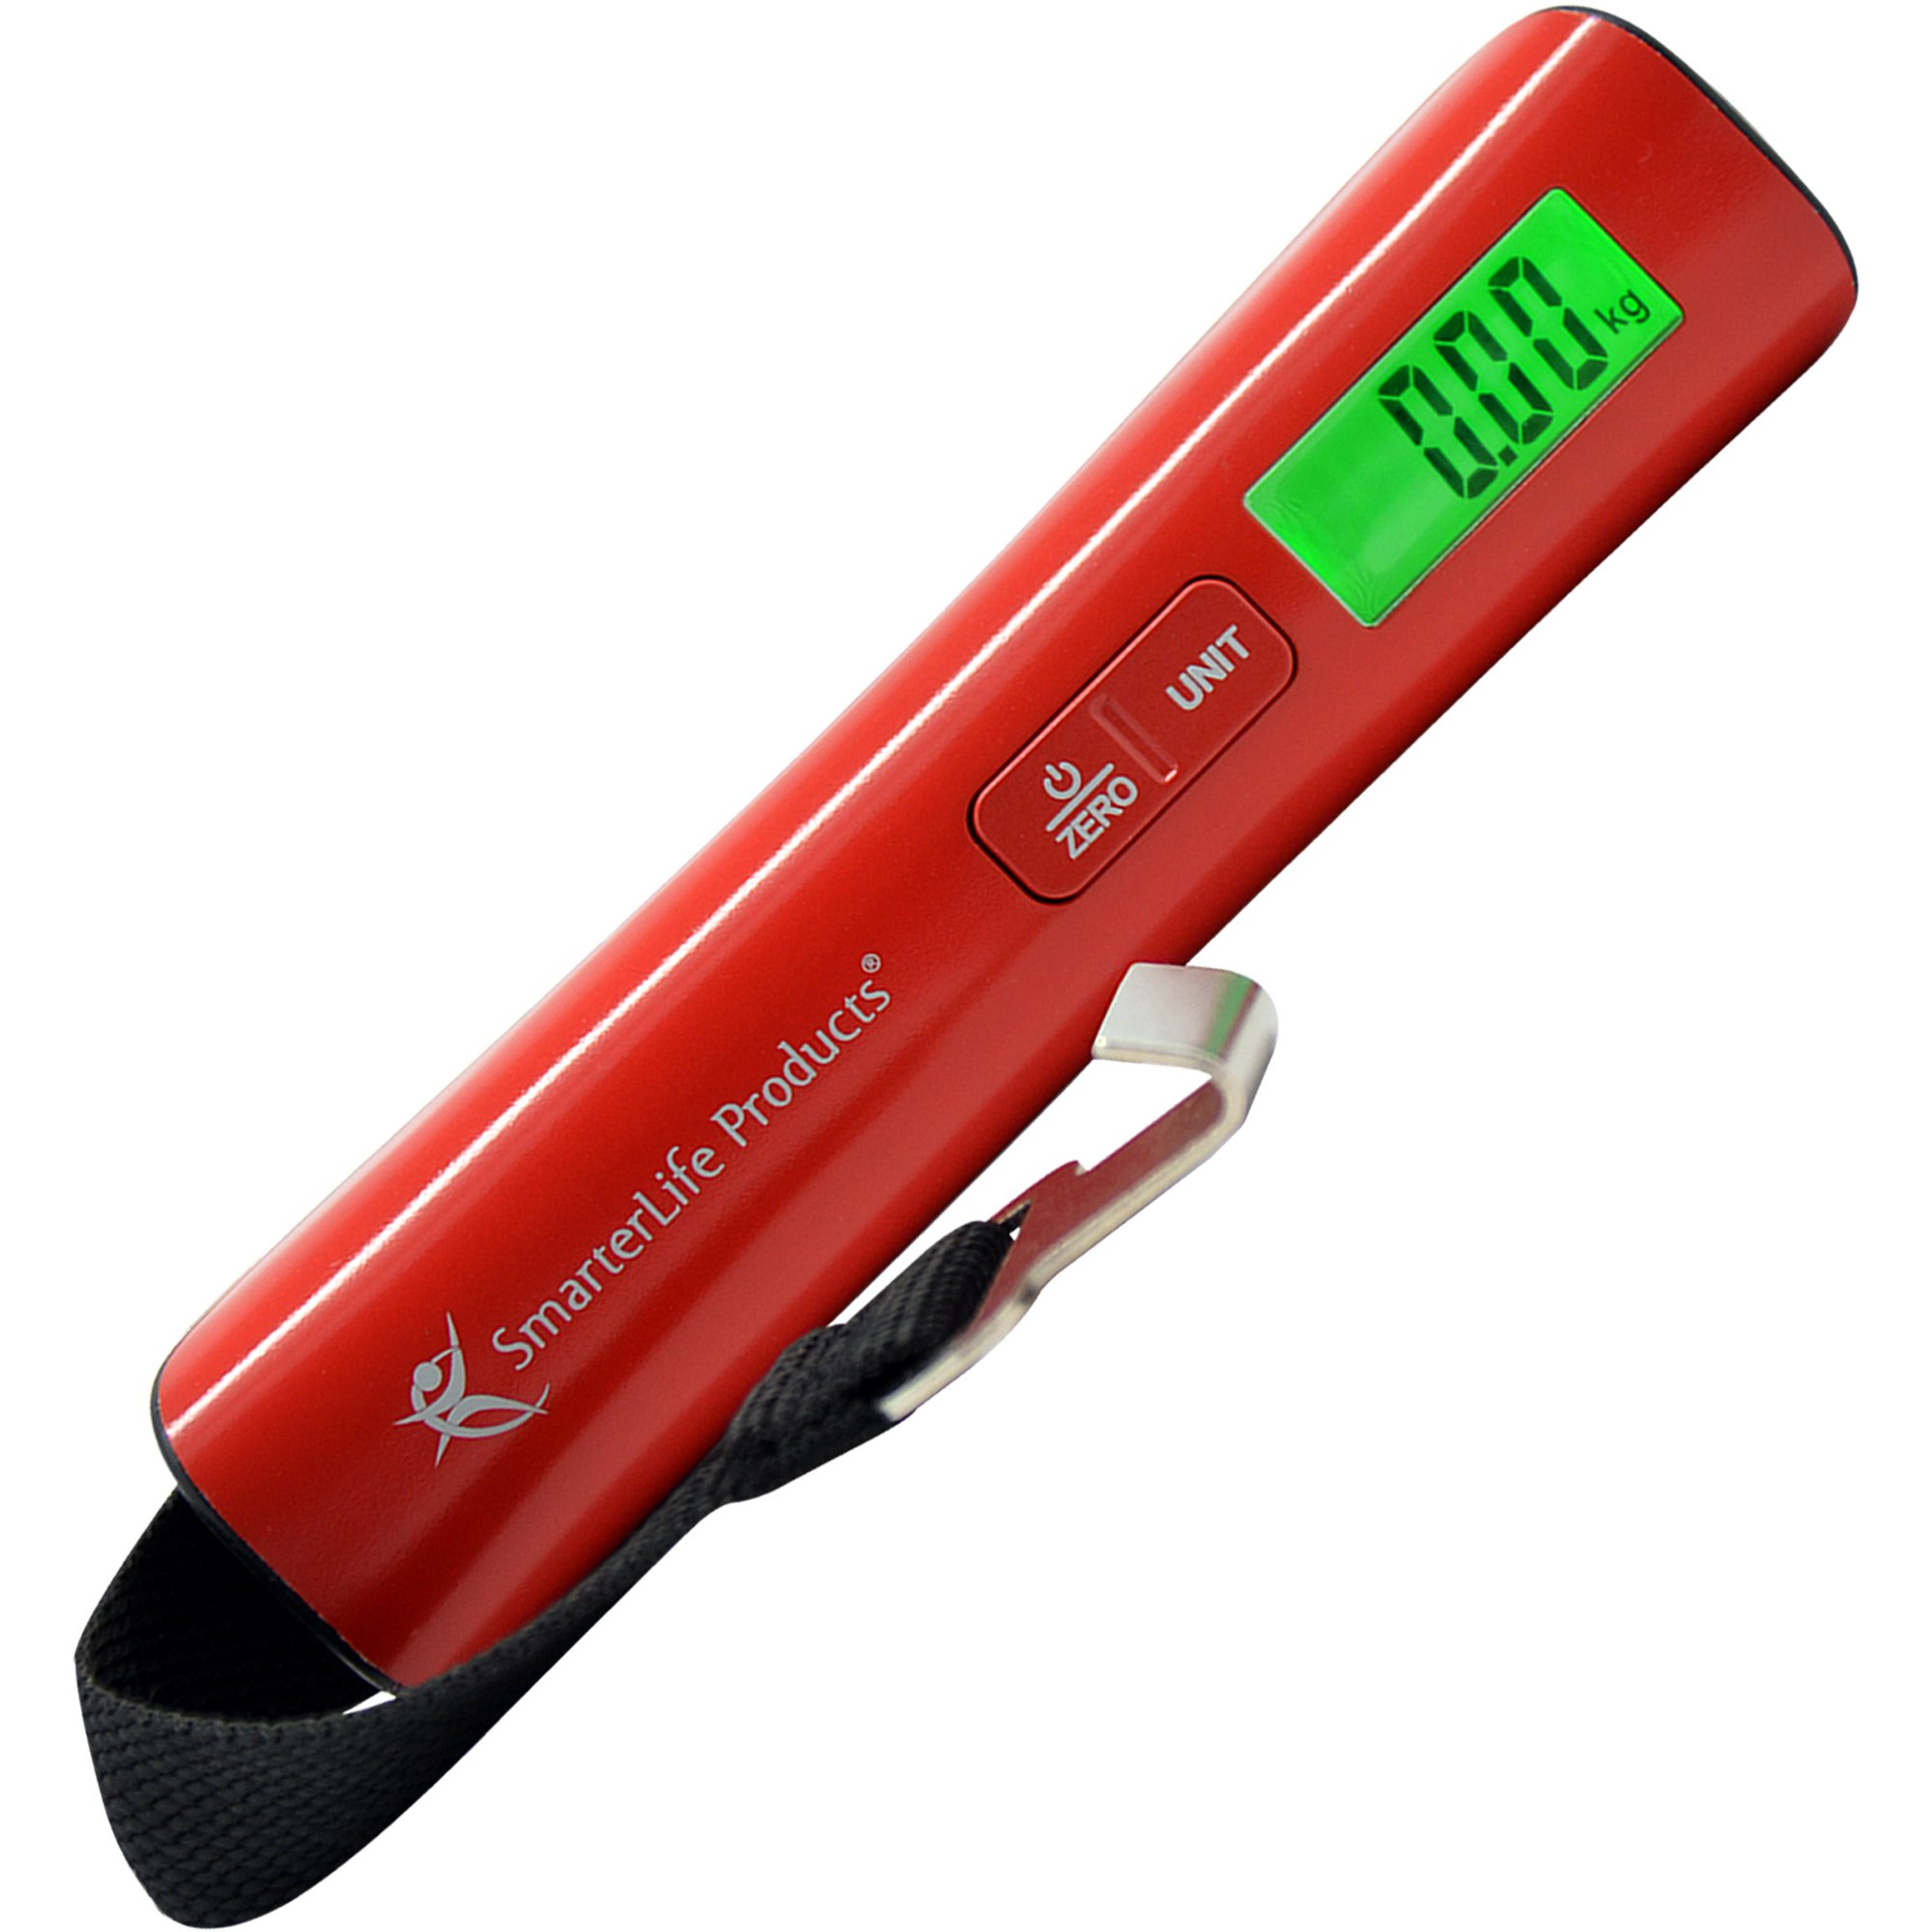 SmarterLife Products Digital Luggage Scale for Weighing Checked Baggage for Air Travel, Large LED Display, Sunset Red